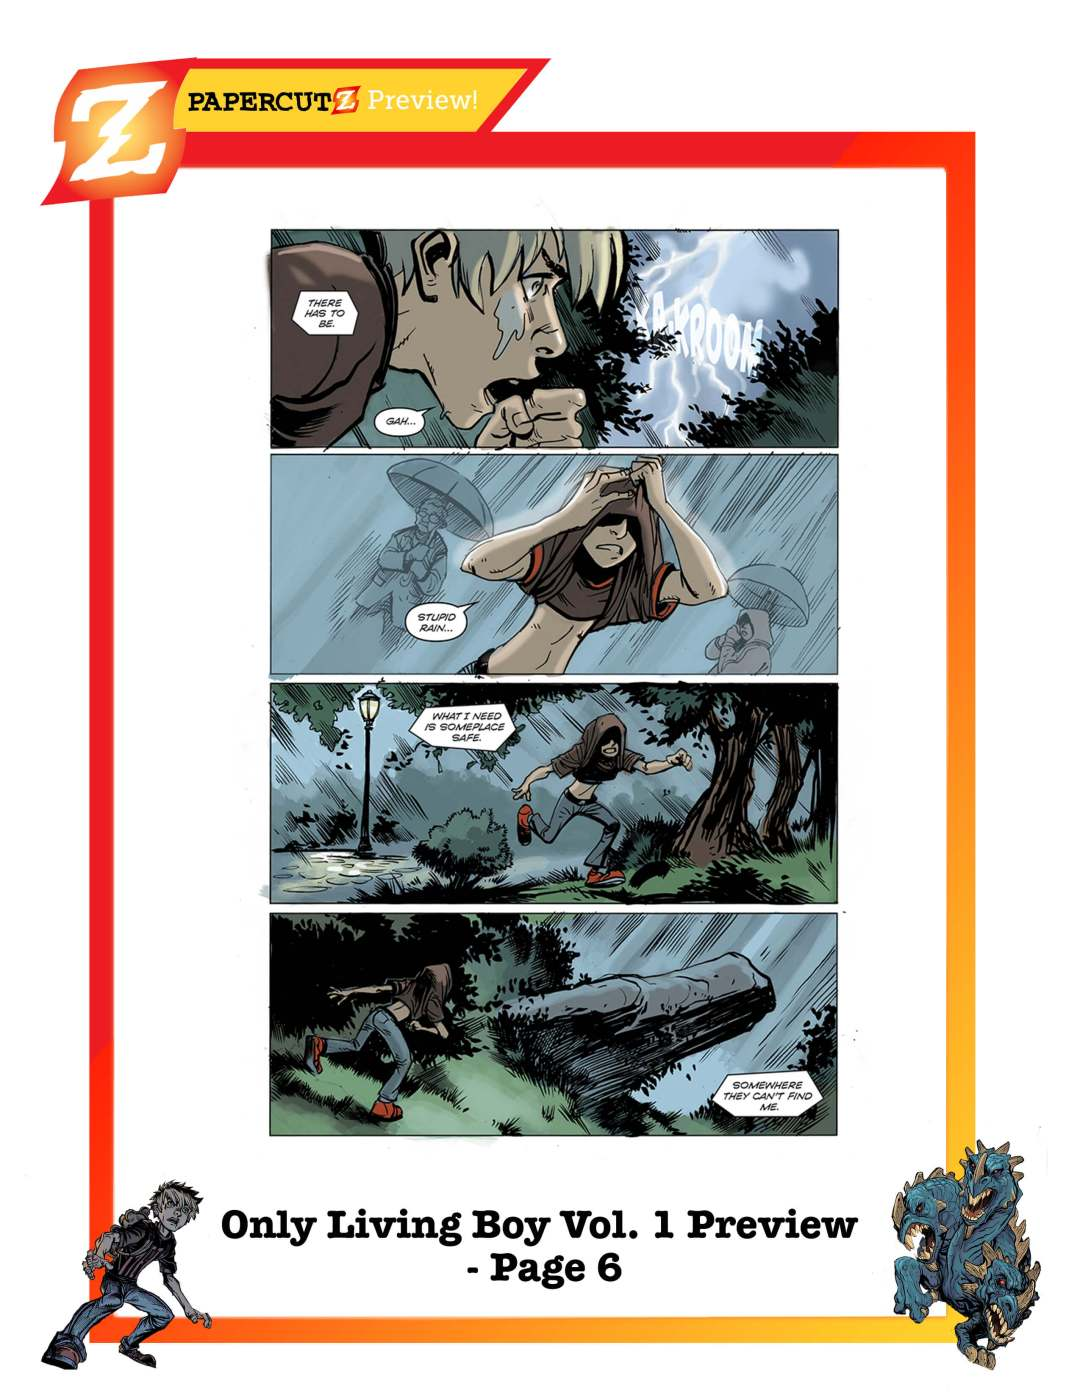 Only_Living_Boy_PREVIEW_page 6